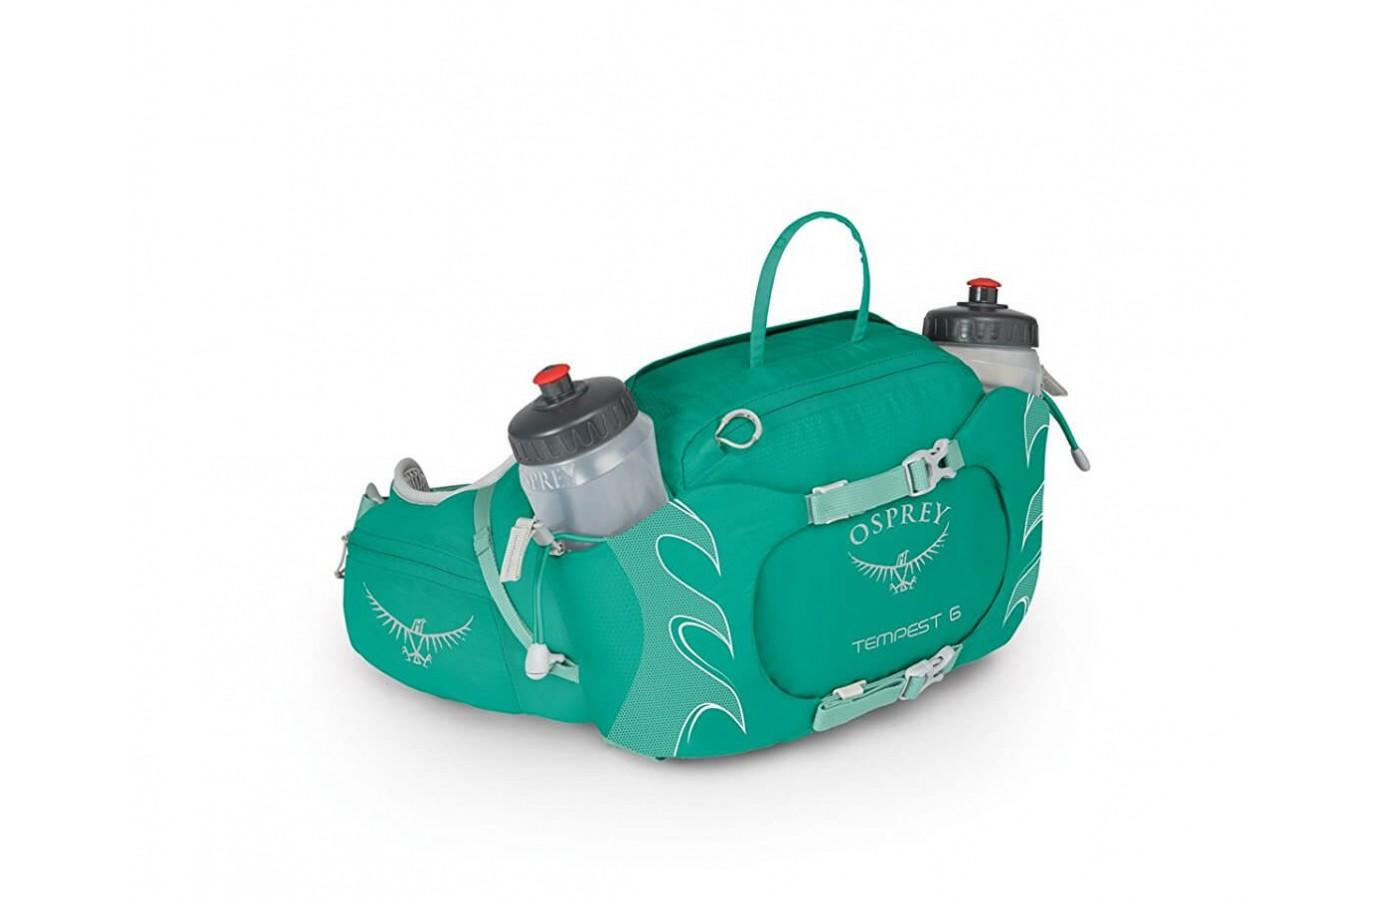 The Osprey also comes in stylish colors.